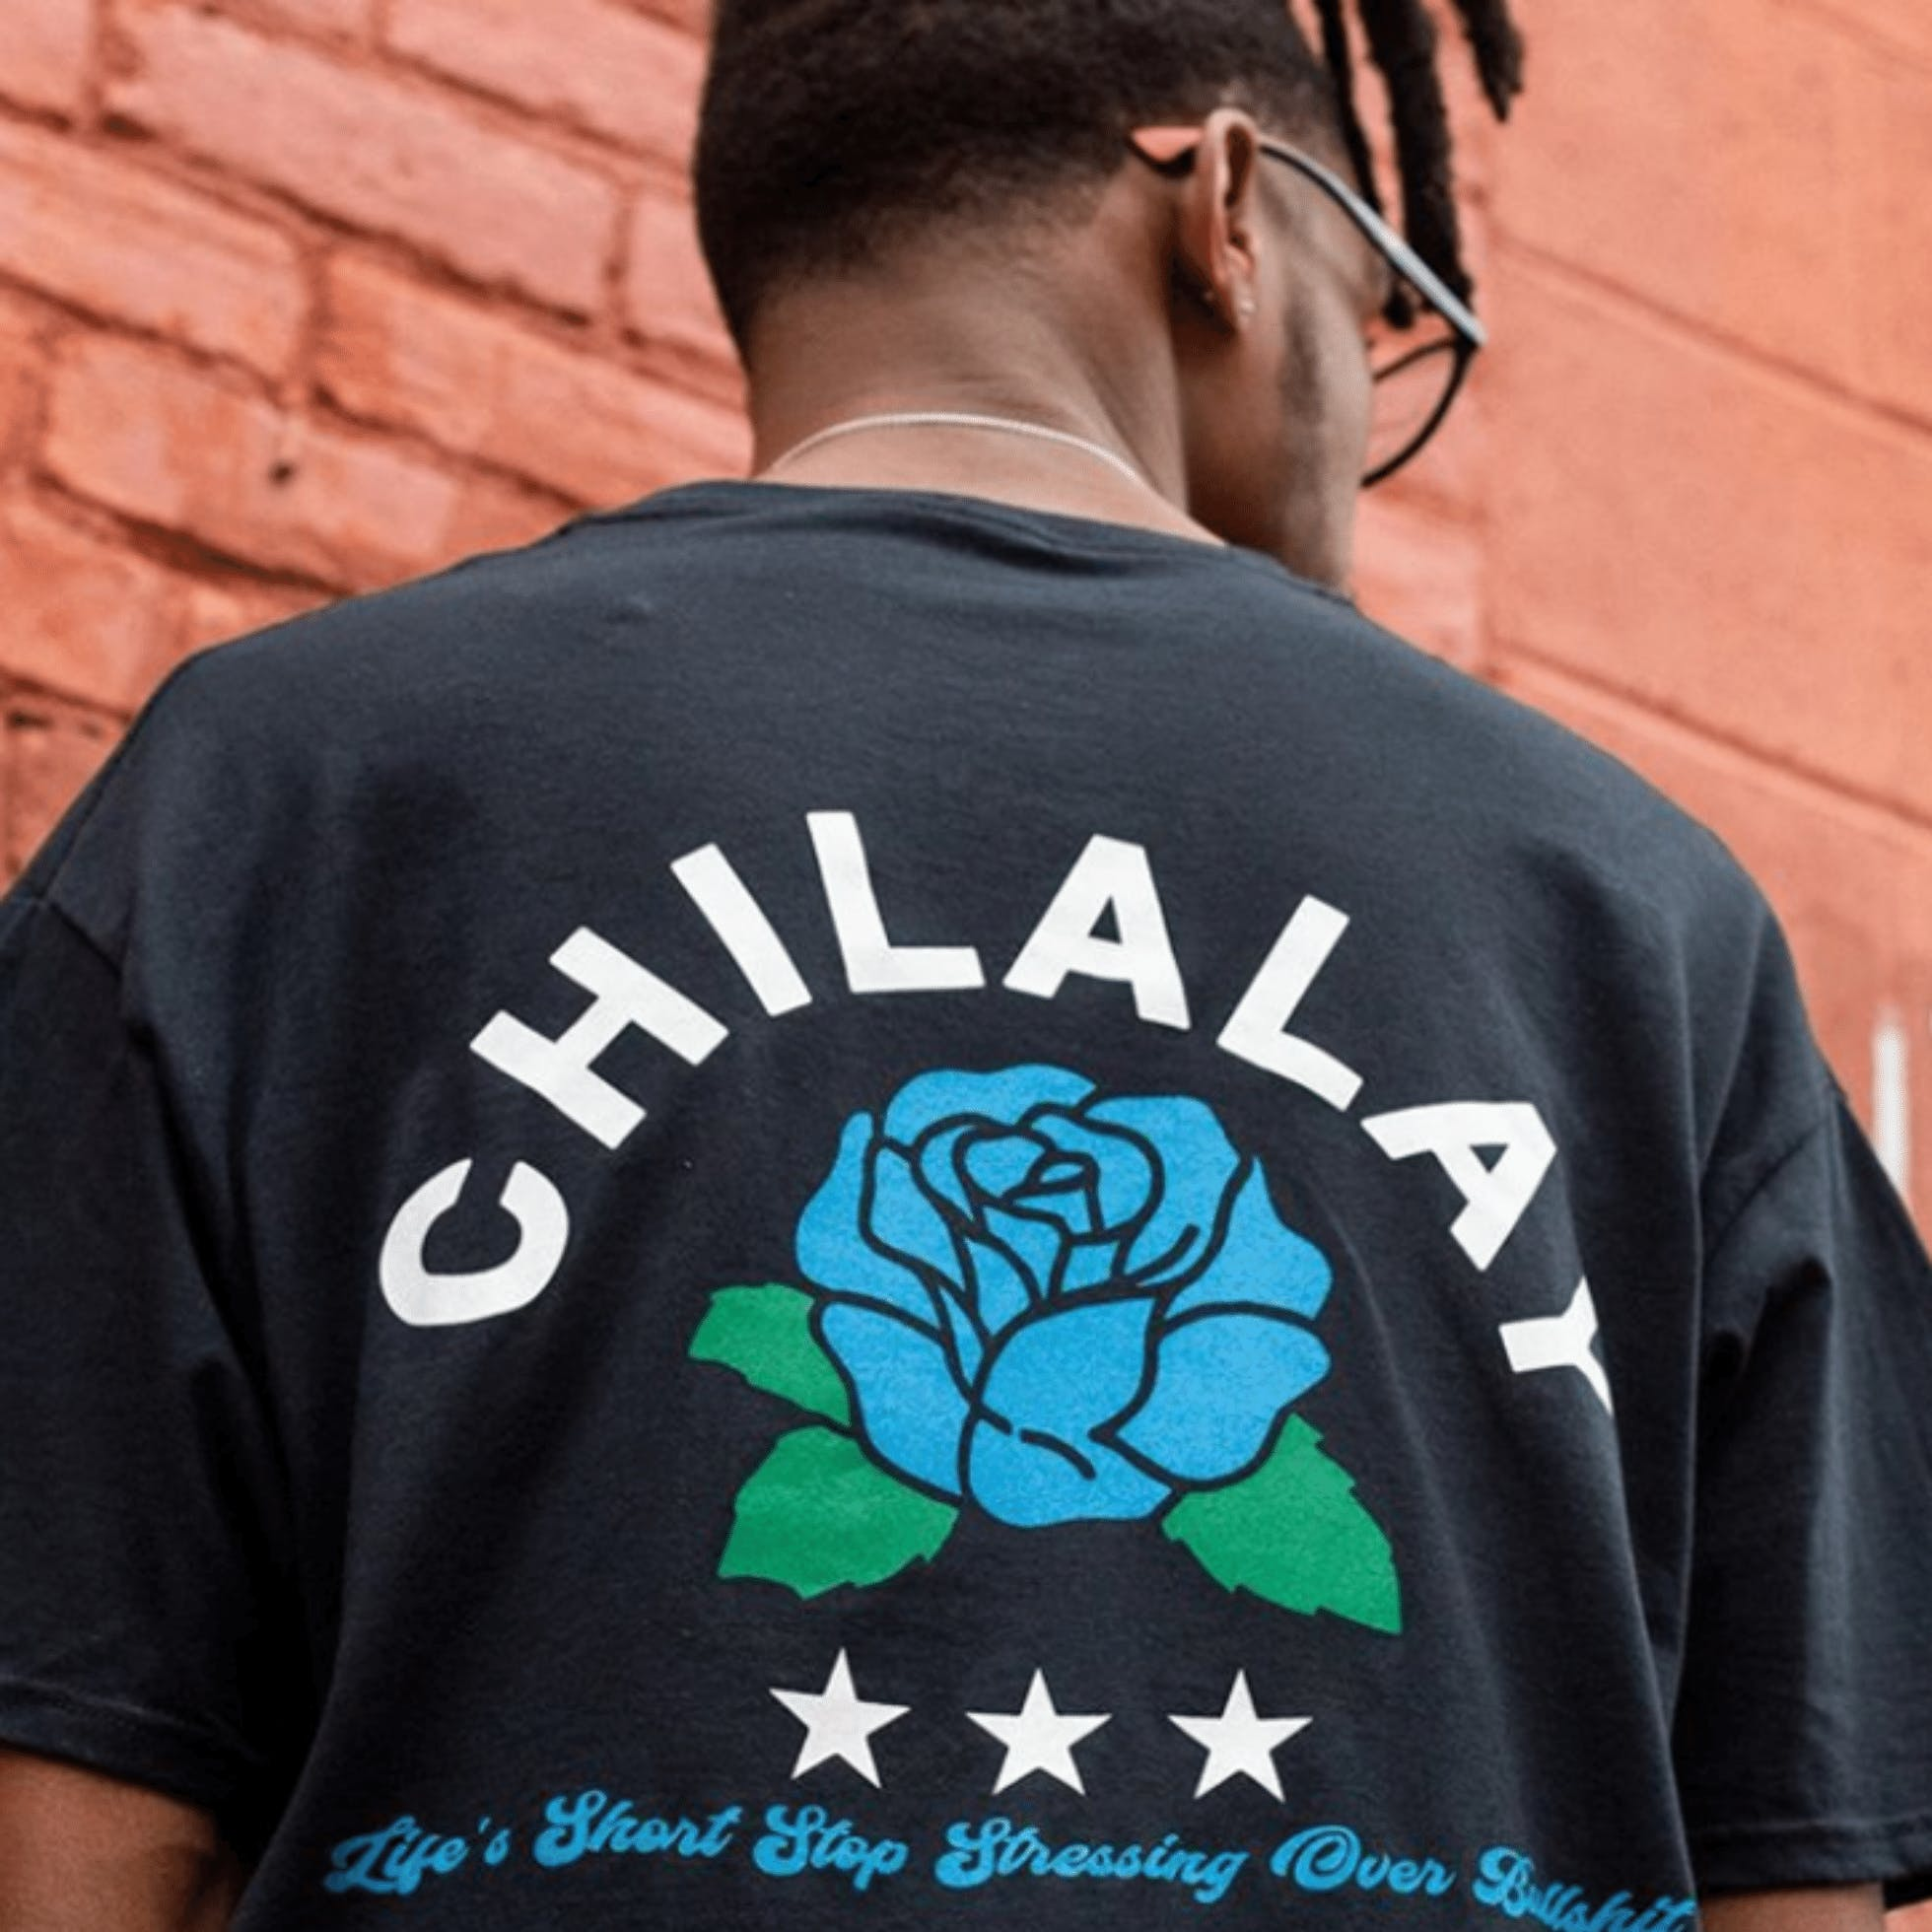 Back of shirt from CHILALAY in Richmond VA